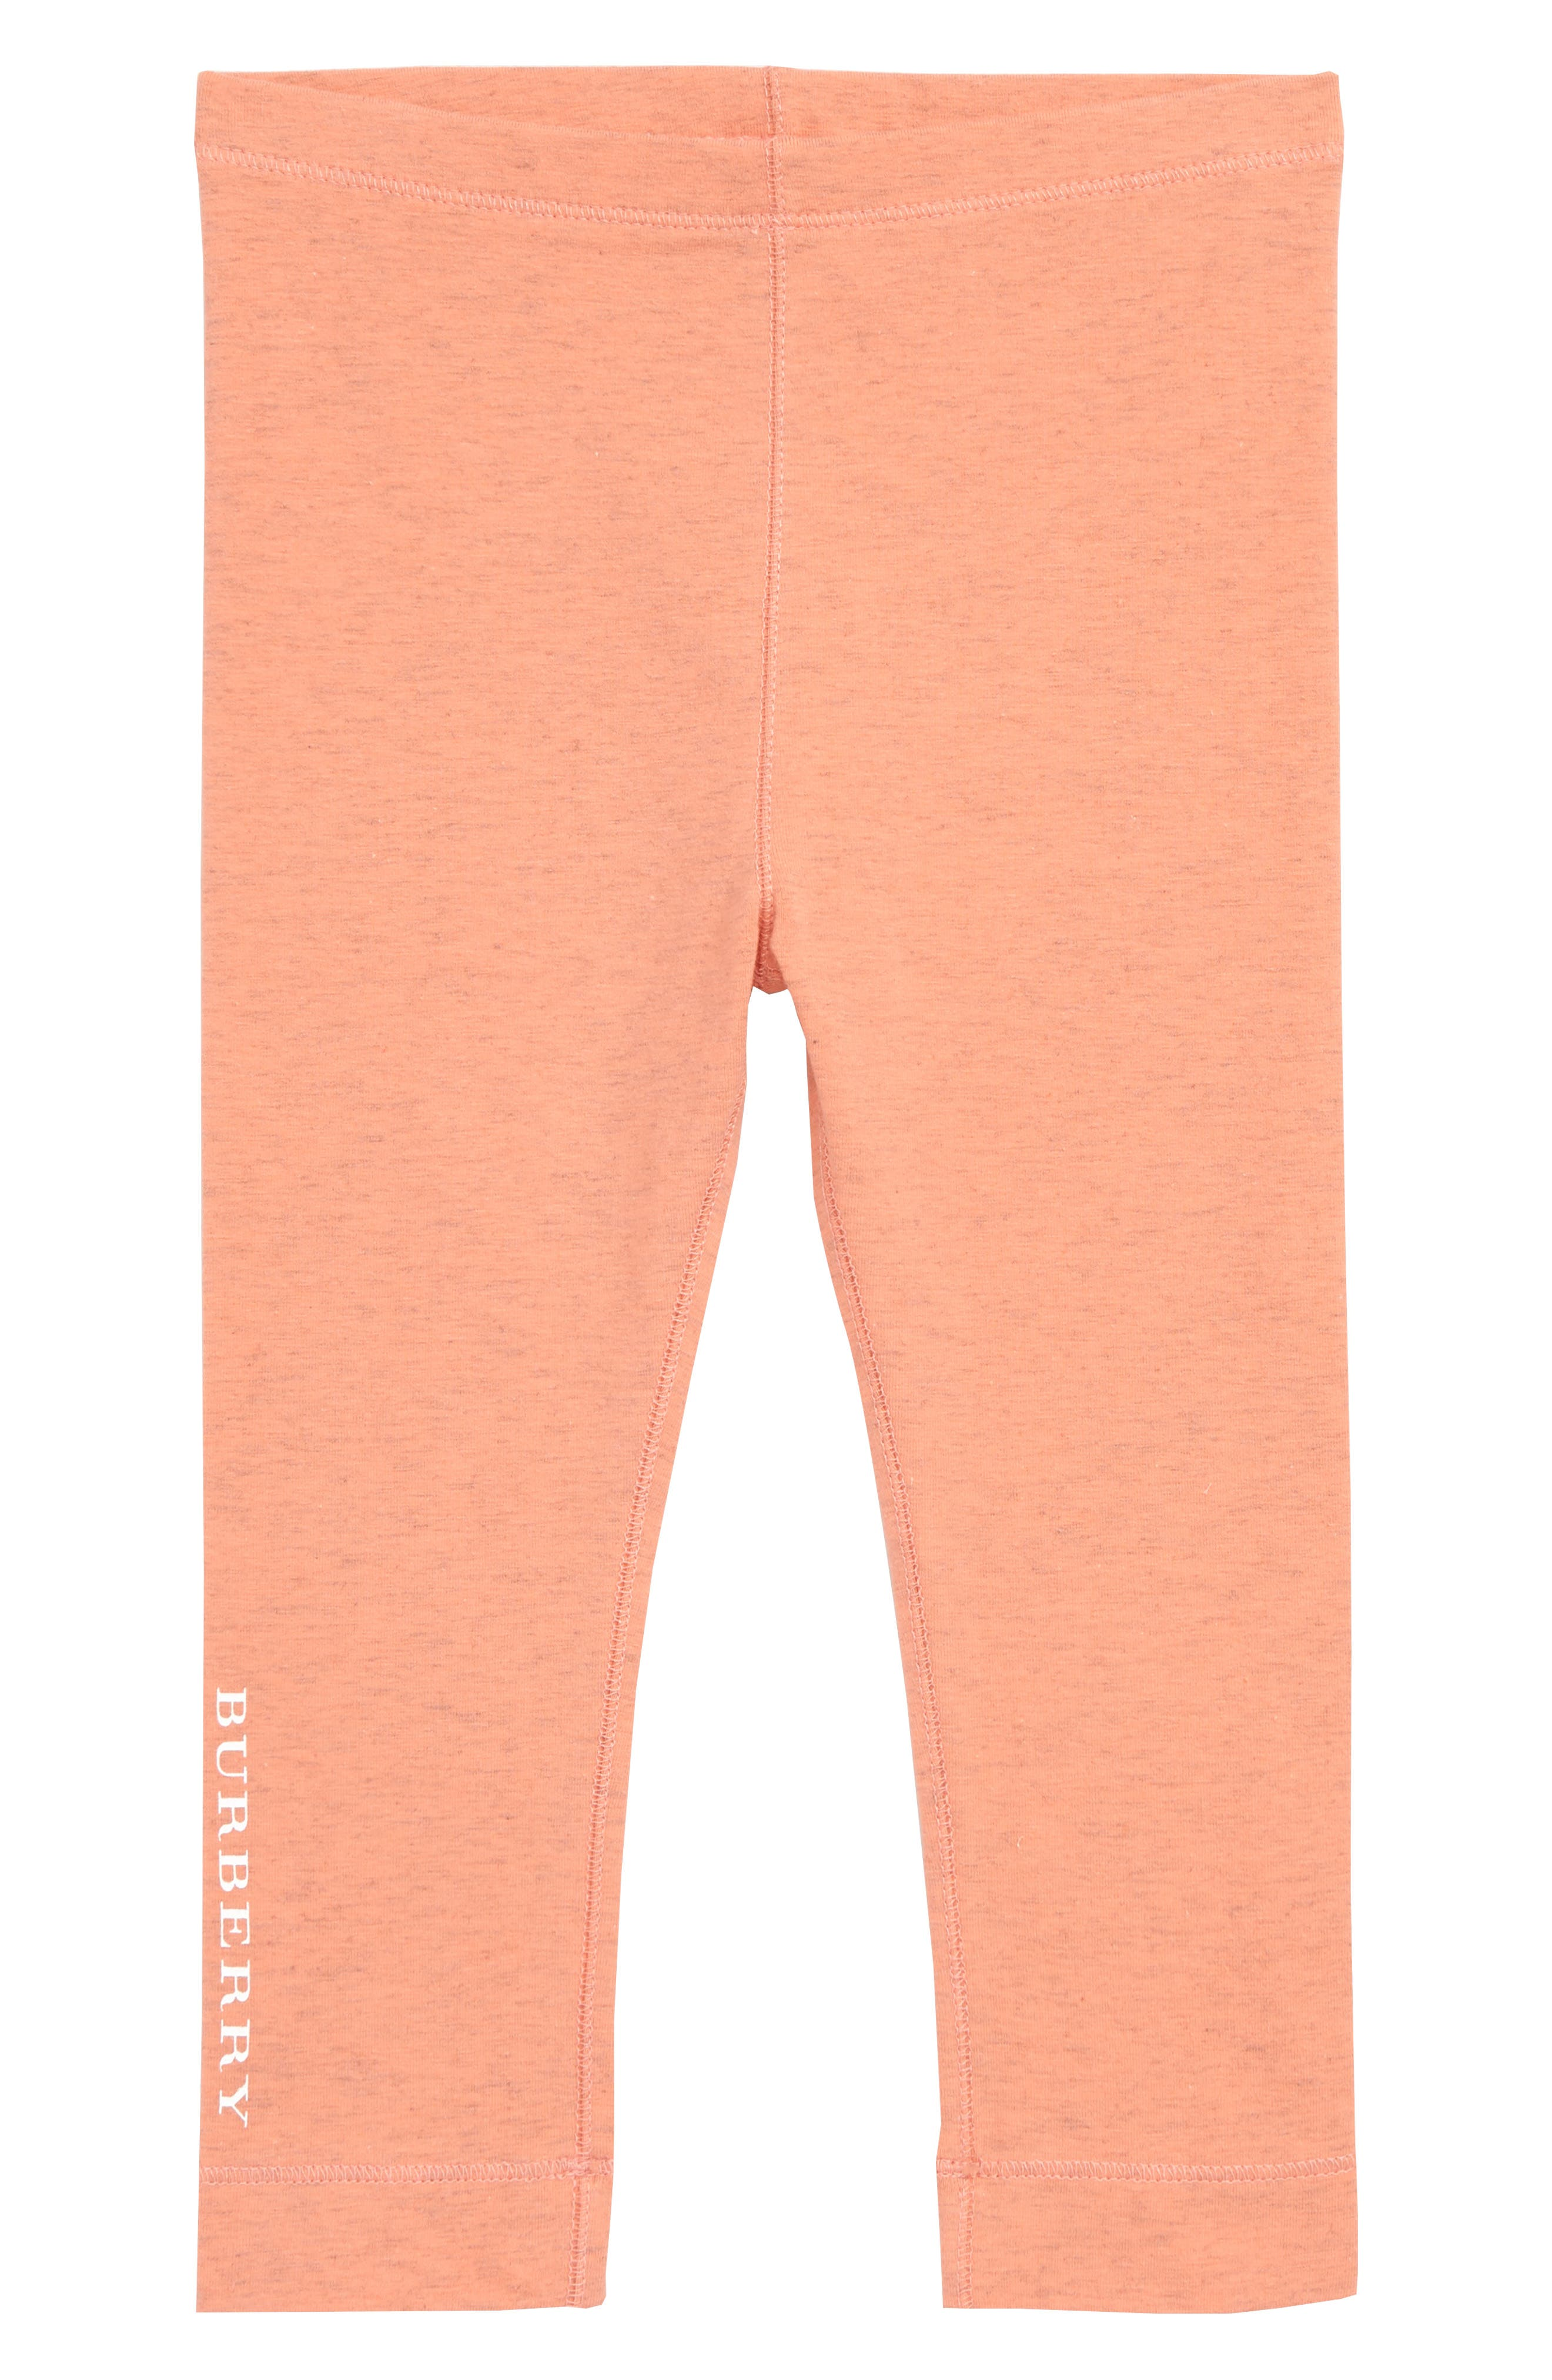 BURBERRY Penny Logo Leggings, Main, color, PALE PINK